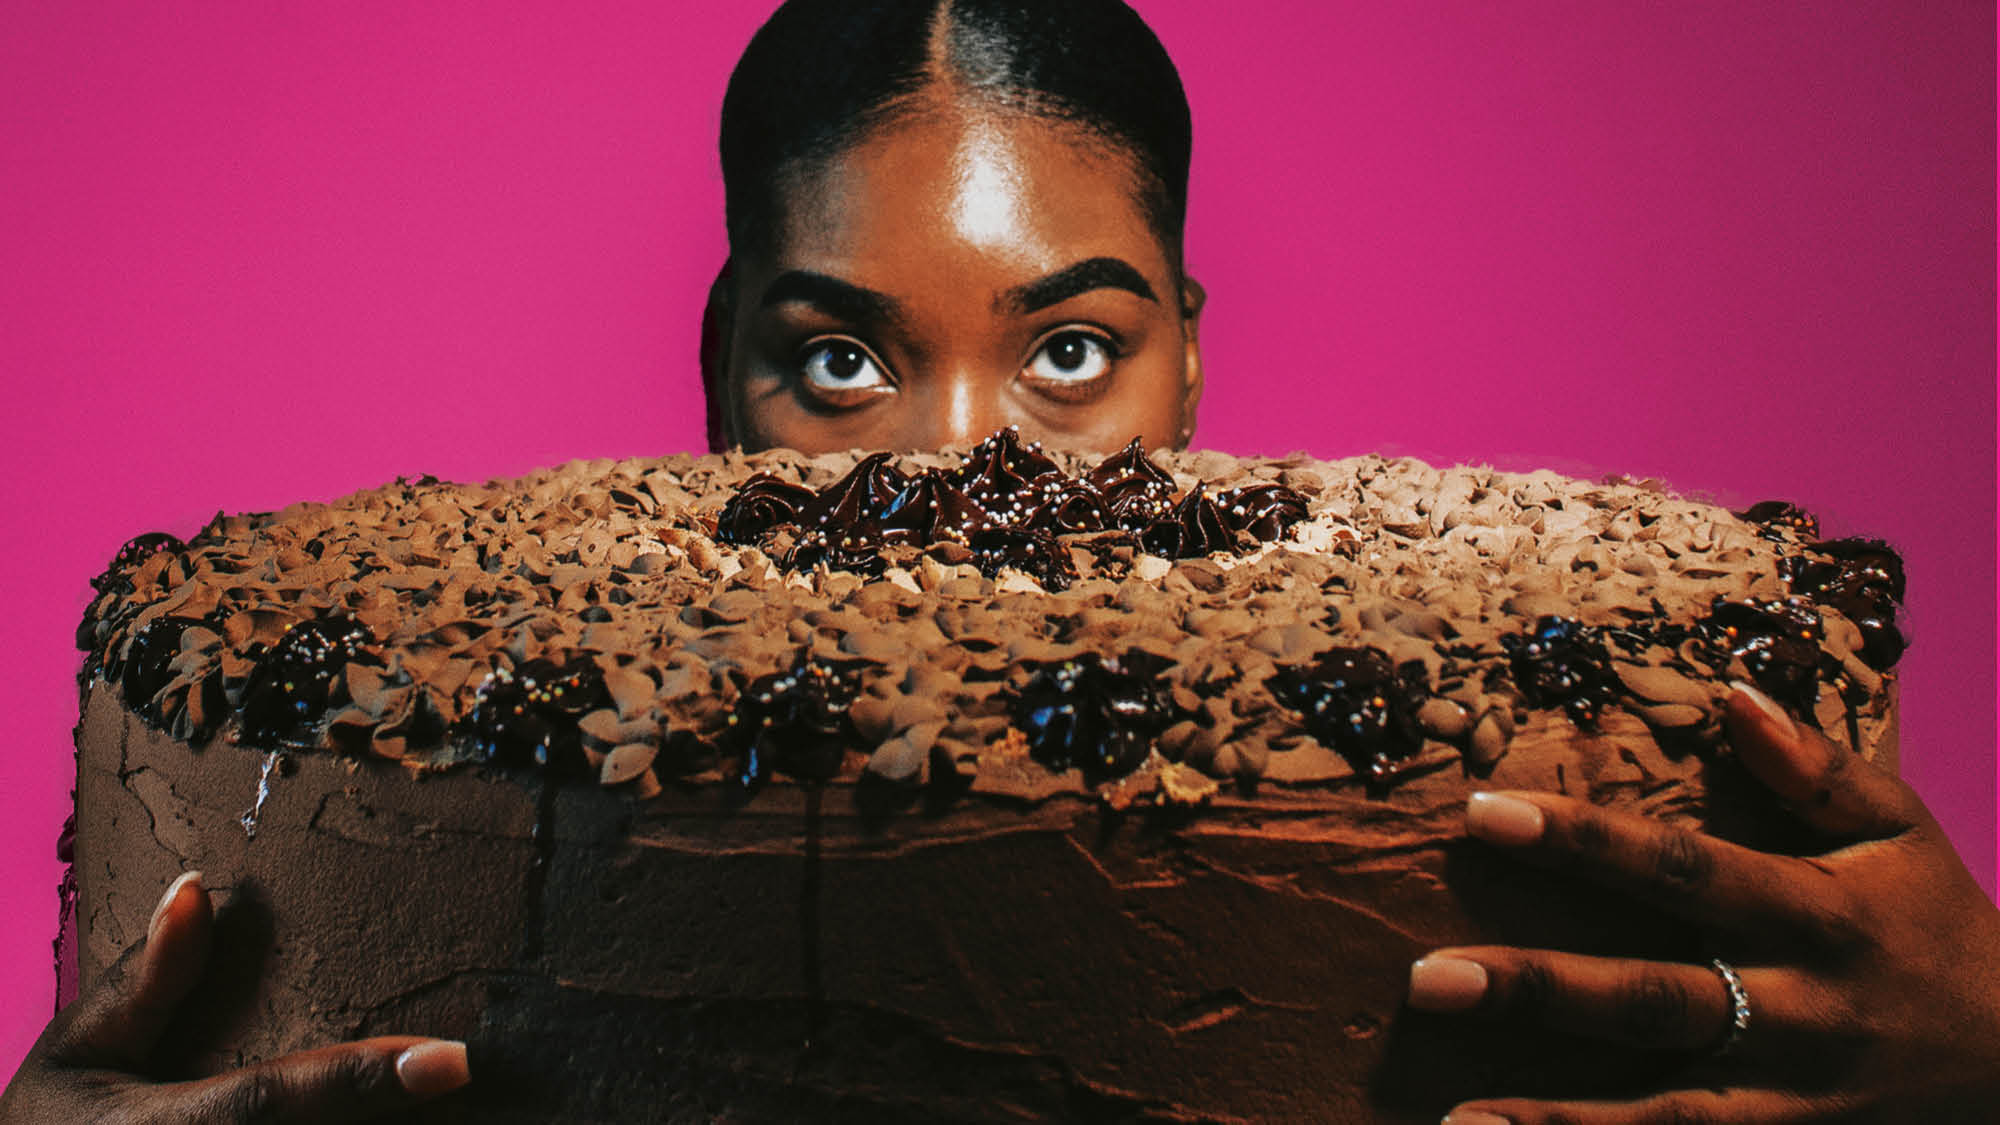 Image: Woman's head appears behind large cake in the foreground, hands wrapped around both sides. Solid pink background.